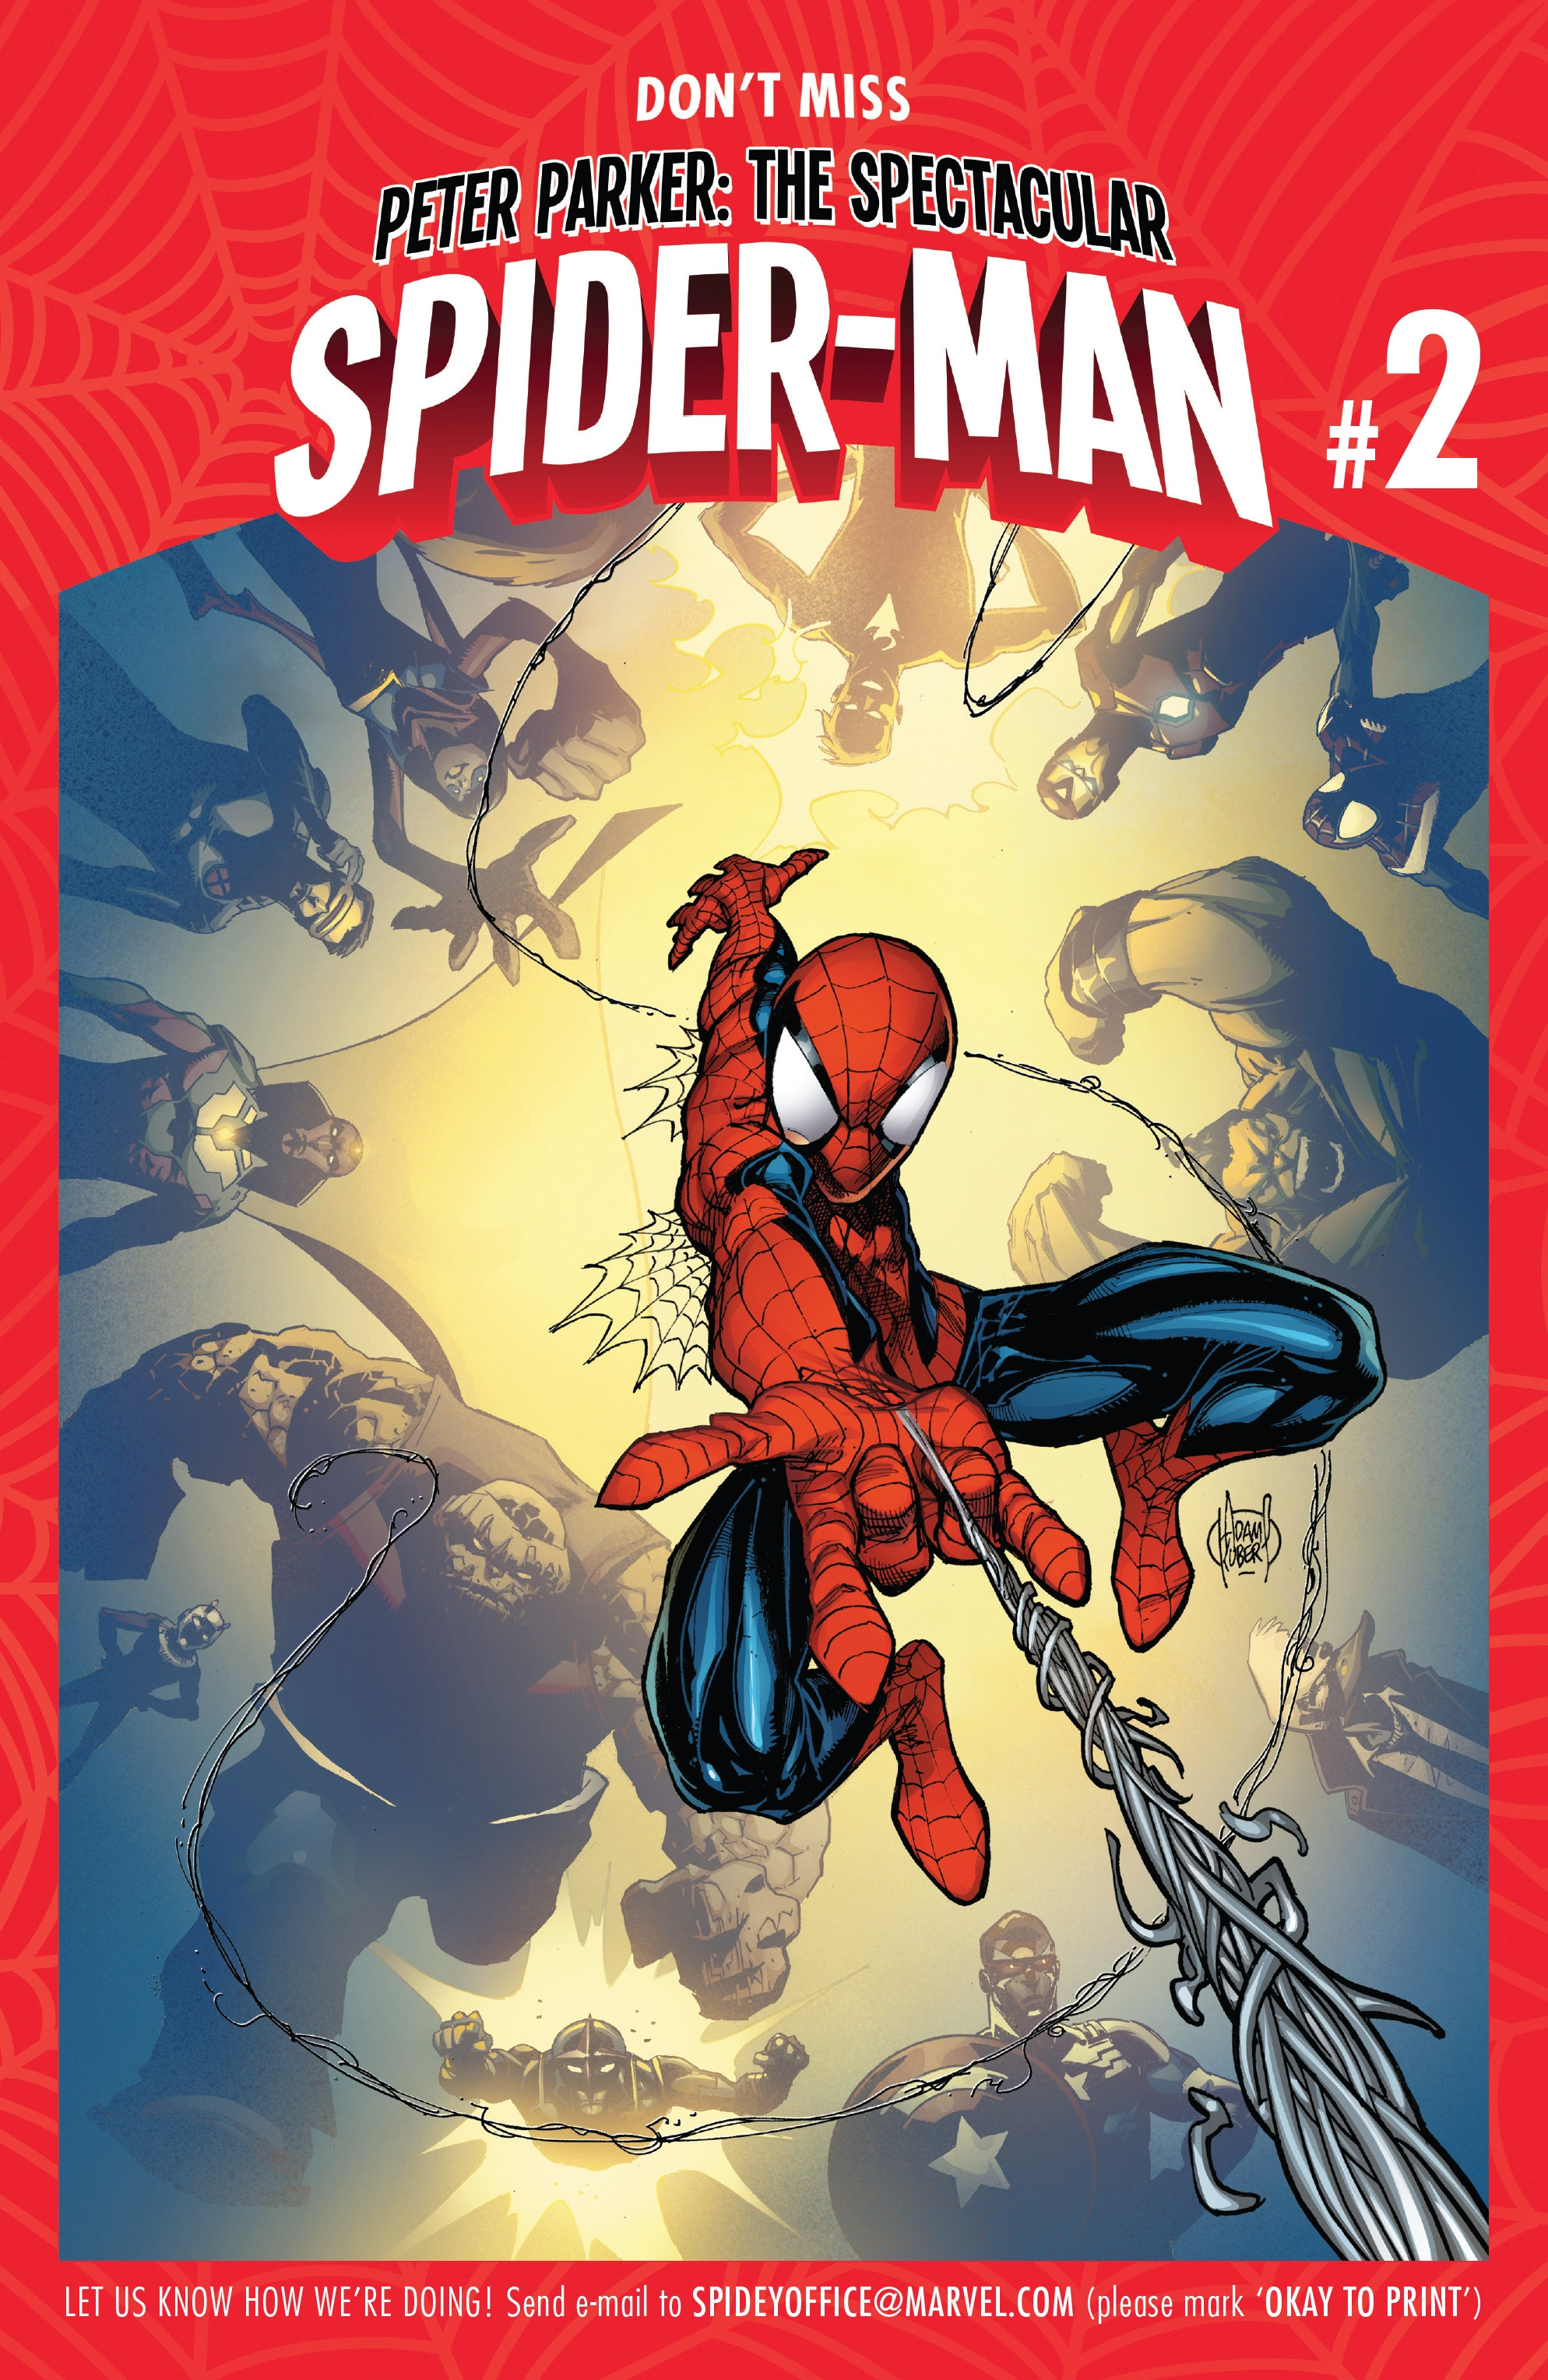 Read online Peter Parker: The Spectacular Spider-Man comic -  Issue #1 - 28